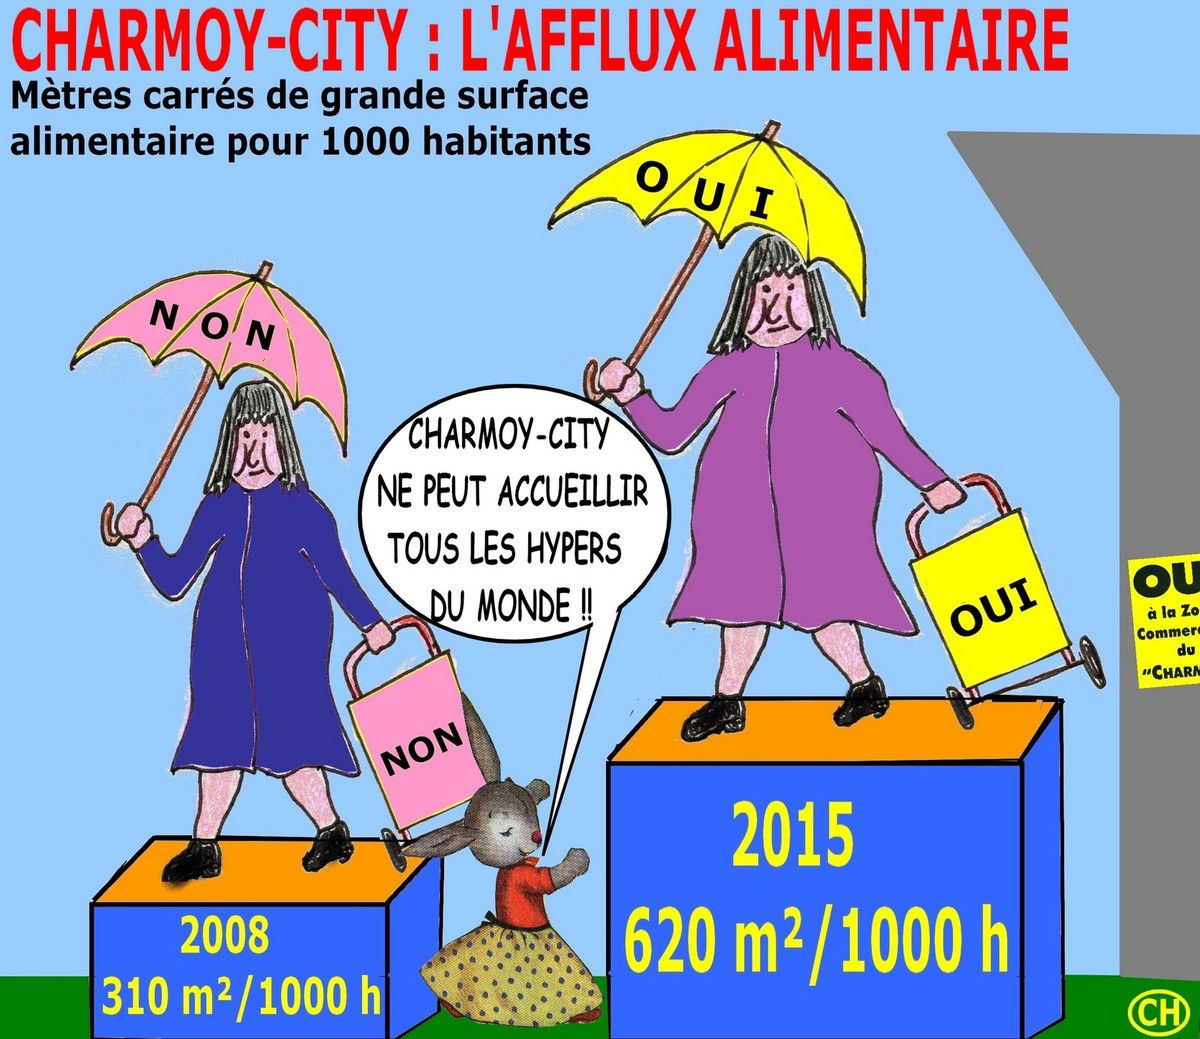 Afflux alimentaire